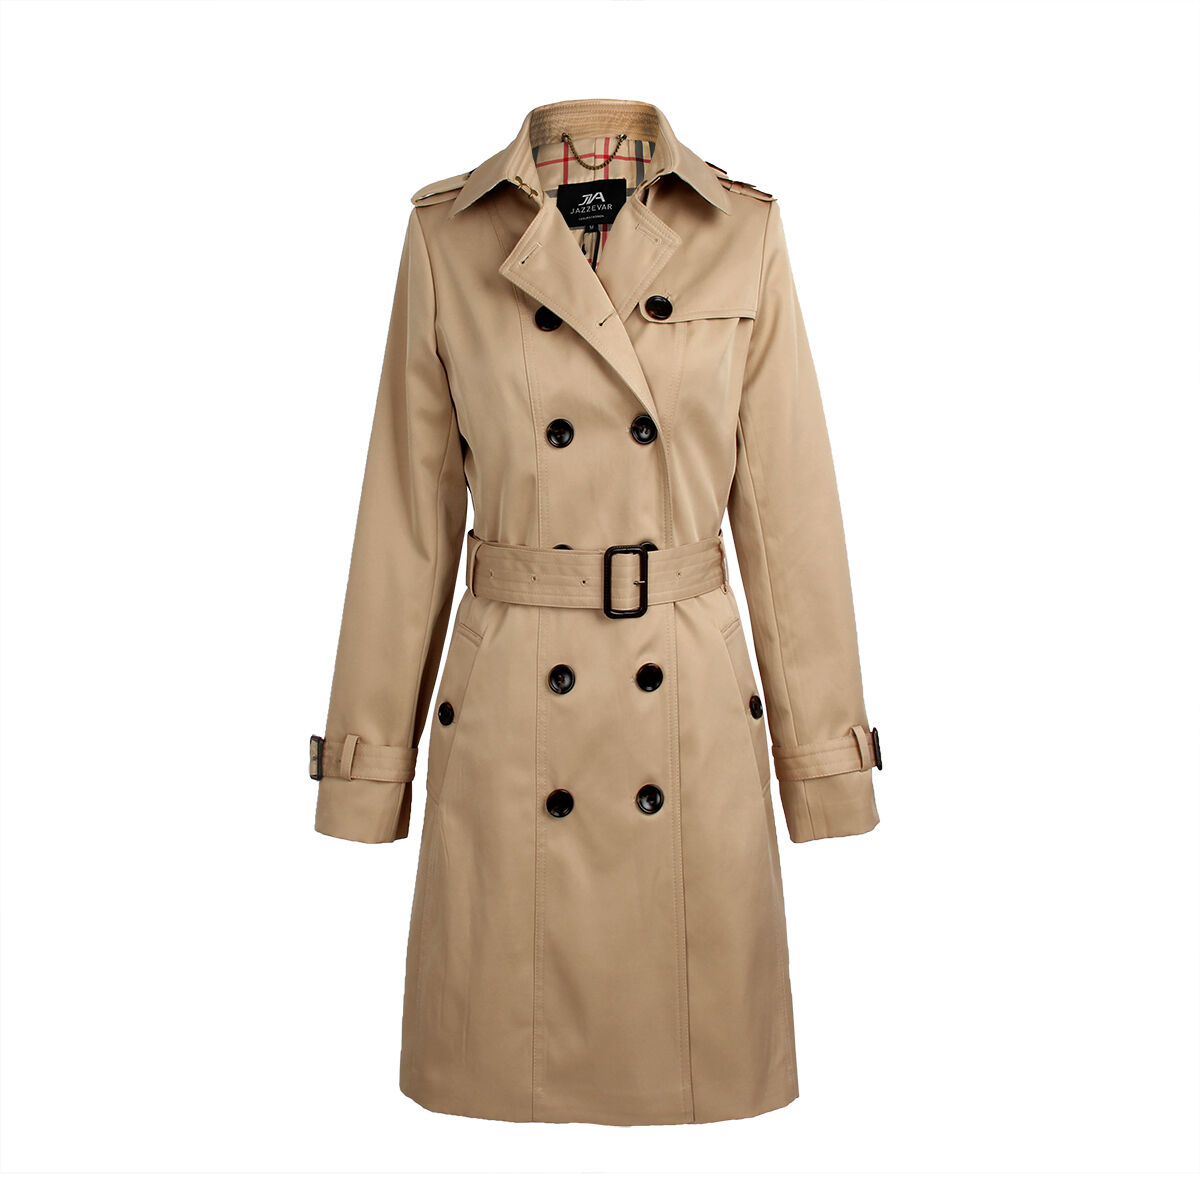 2018 Women's Double Breasted Trench Coat Business Slimmed Waterproof Raincoat